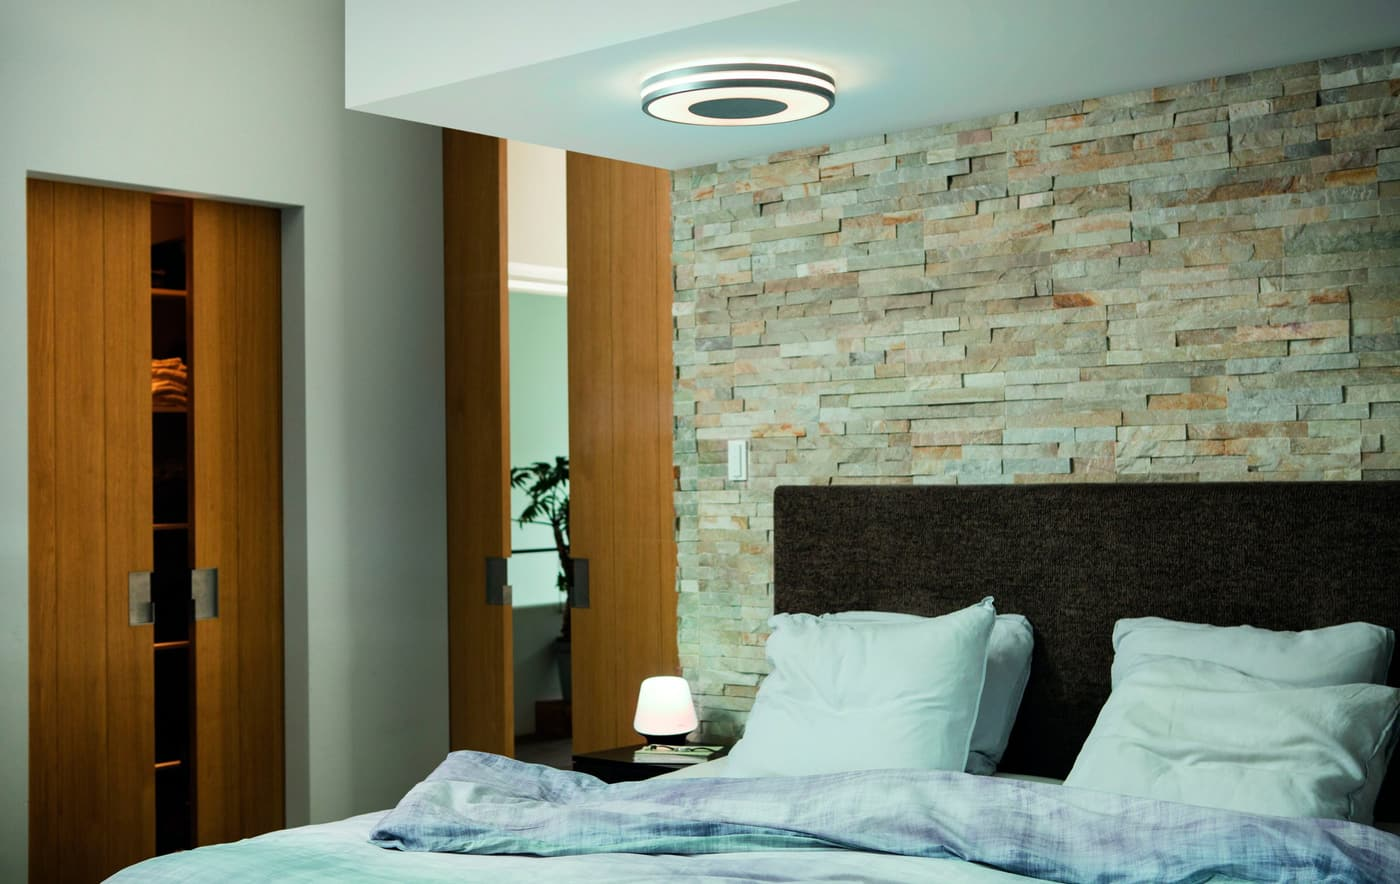 Plafoniera A Led Beign Philips Hue : Philips hue being plafoniera migros